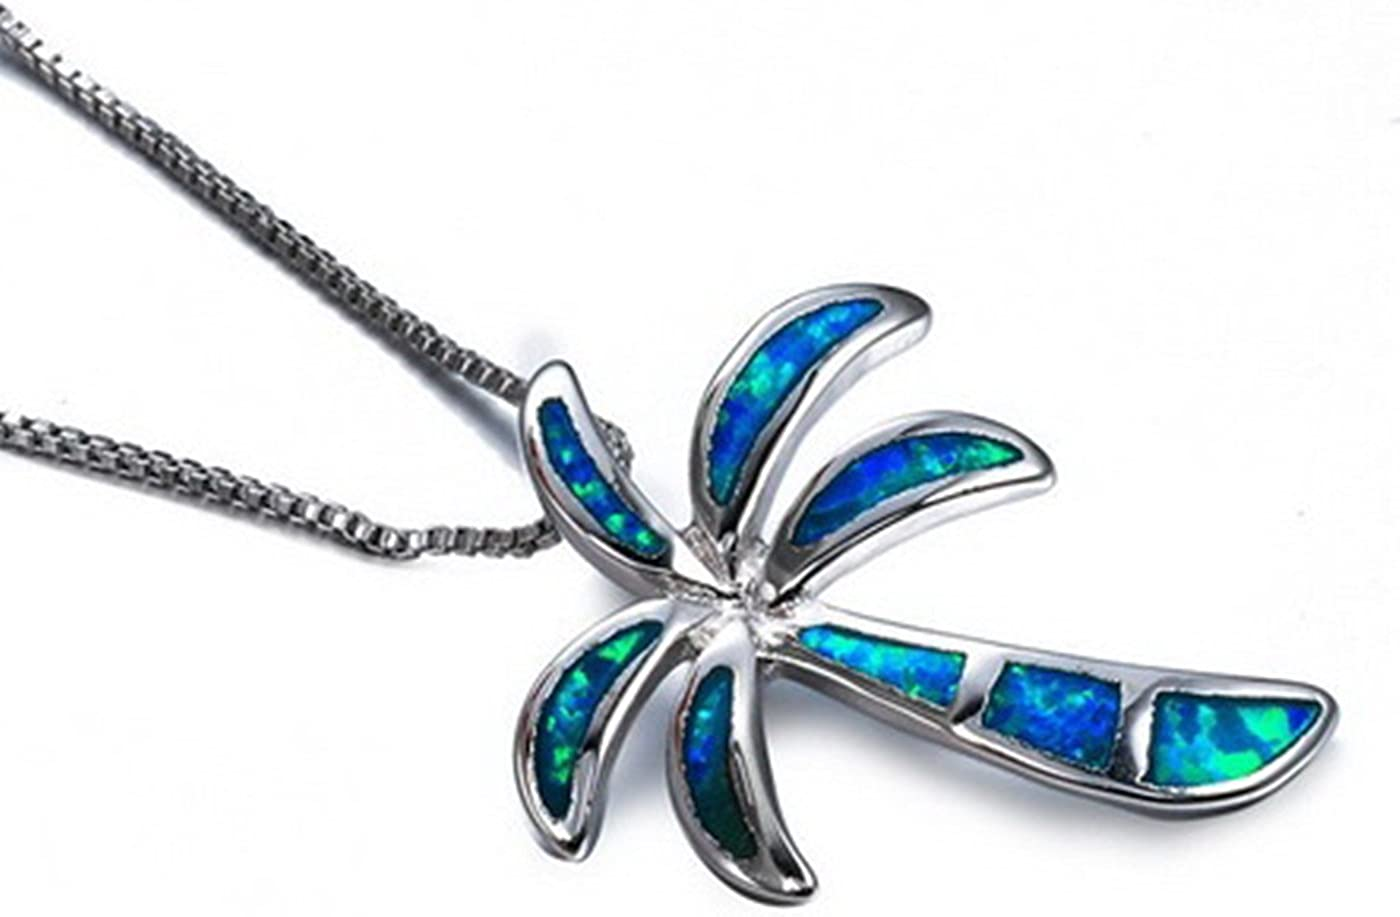 Fortonatori Created Blue Opal Dragonfly Necklace 925 Silver Pendant Necklace 18 Chain